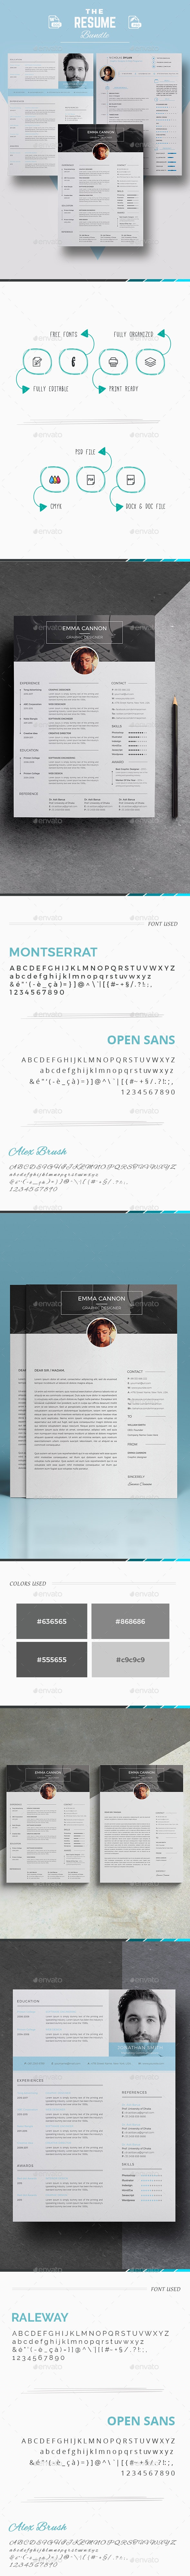 The Bundle Resume Template - Resumes Stationery